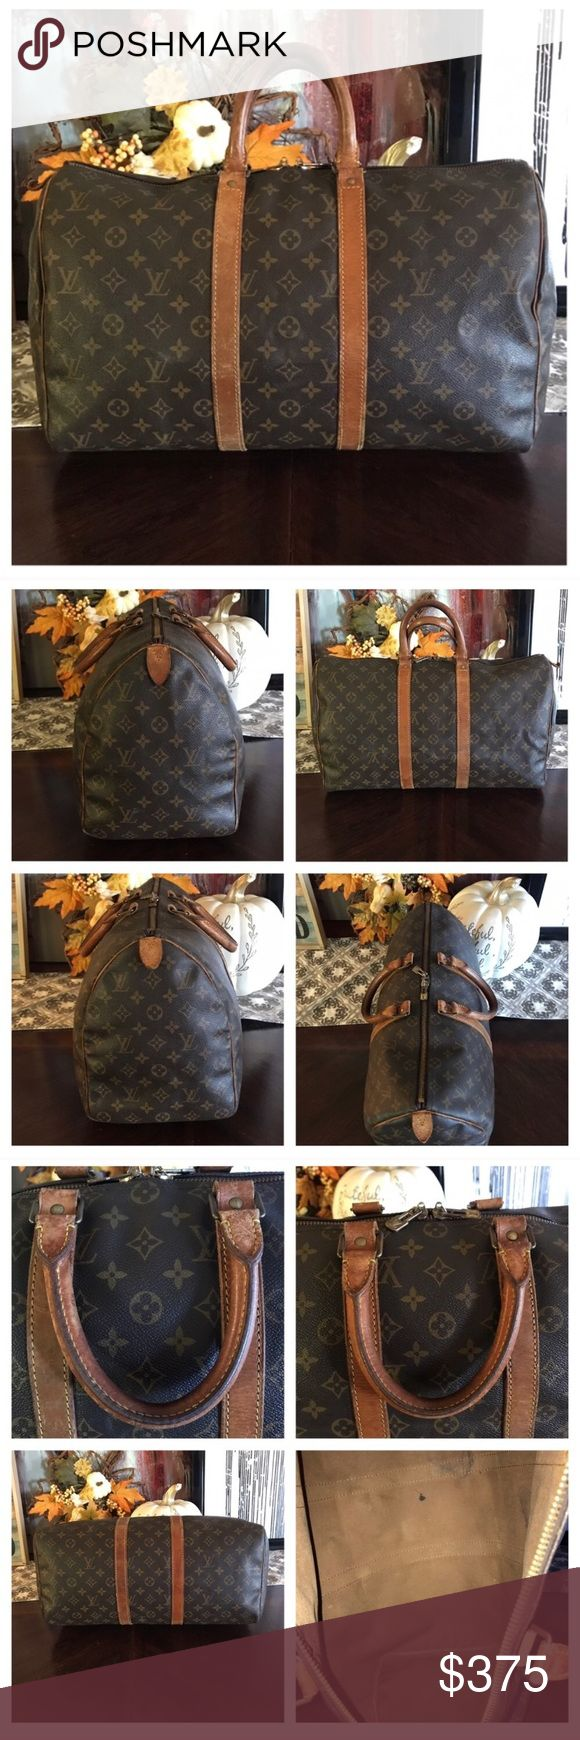 """Authentic Louis Vuitton Keepall 45 100% Authentic Louis Vuitton Keepall 45.  Monogram canvas has no scratches or tears.  Piping is rubbed but not exposed.  See pictures.  Handles have signs of use but no cracks.   Stitching is good.   Zippers work good.   Hardware has tarnish.  Pull tabs have cracks.   Inside has stains.   See pics.  W17.7xH10.6xD7.87"""". I do not trade. Louis Vuitton Bags Travel Bags"""